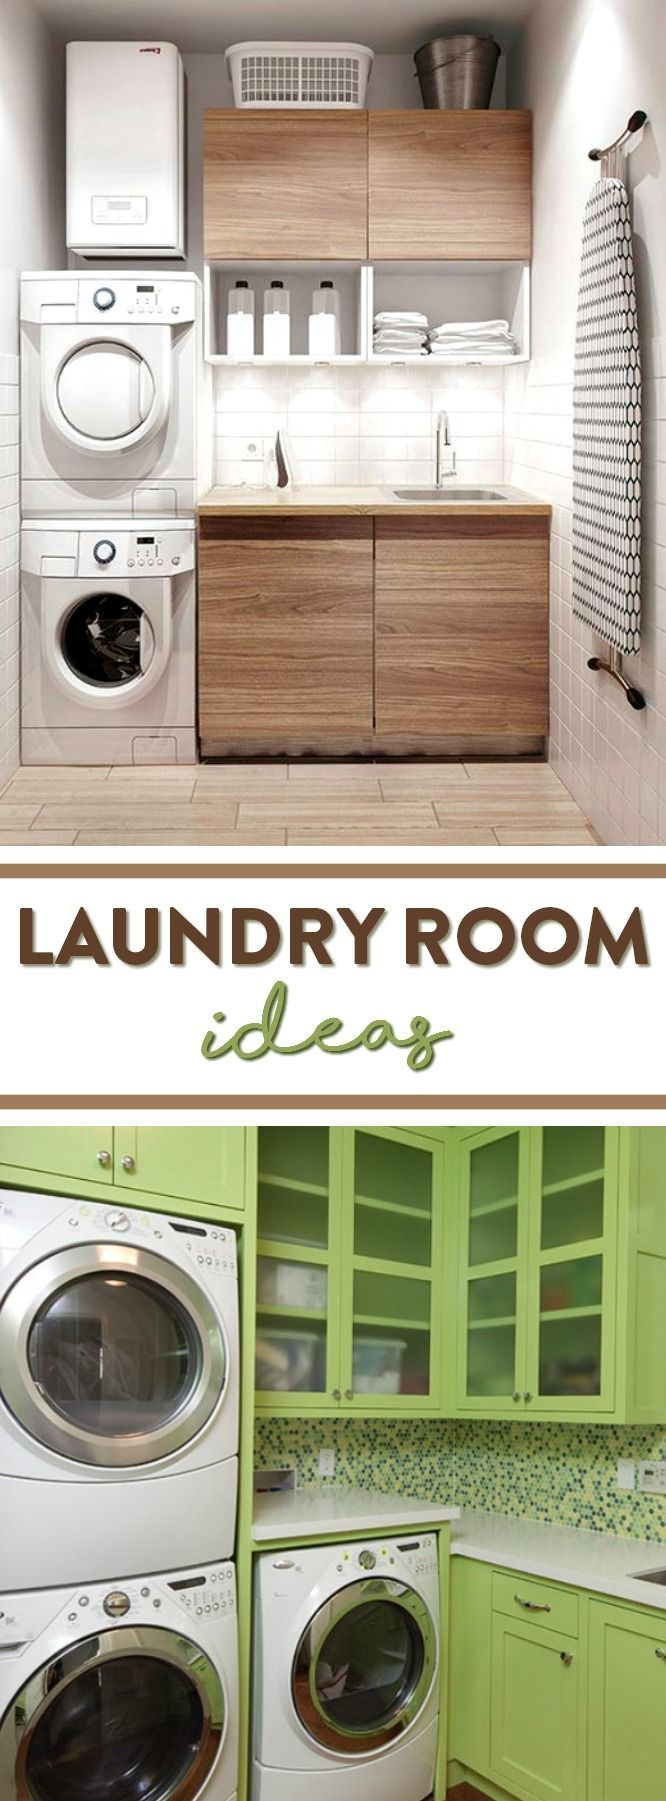 laundry room ideas modern laundry rooms diy storage for on effectively laundry room decoration ideas easy ideas to inspire you id=22586